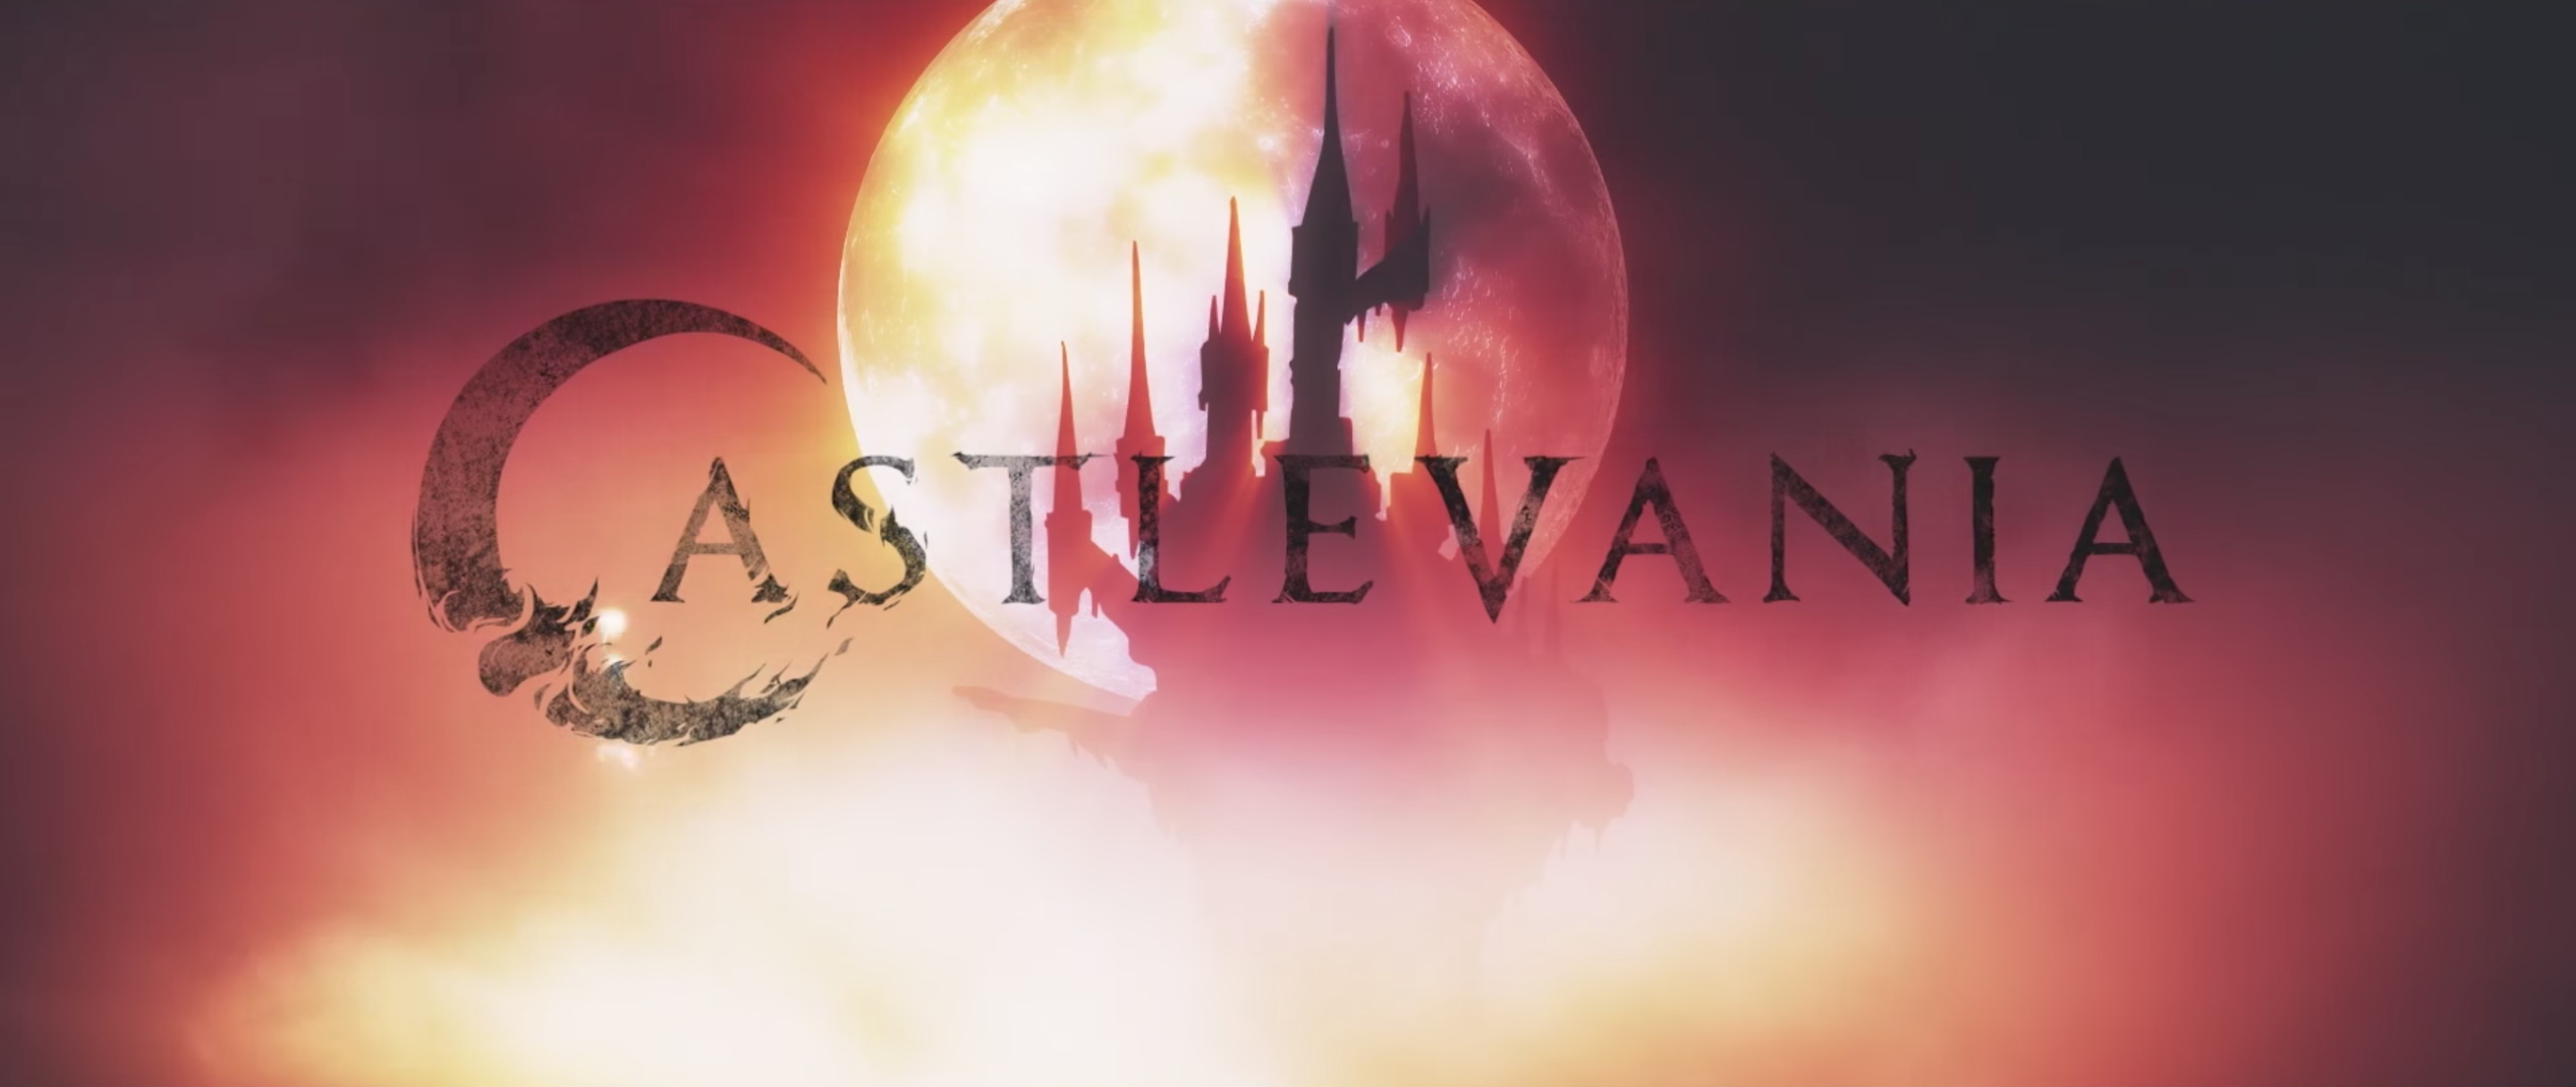 First Trailer for the Castlevania Netflix Series is Here